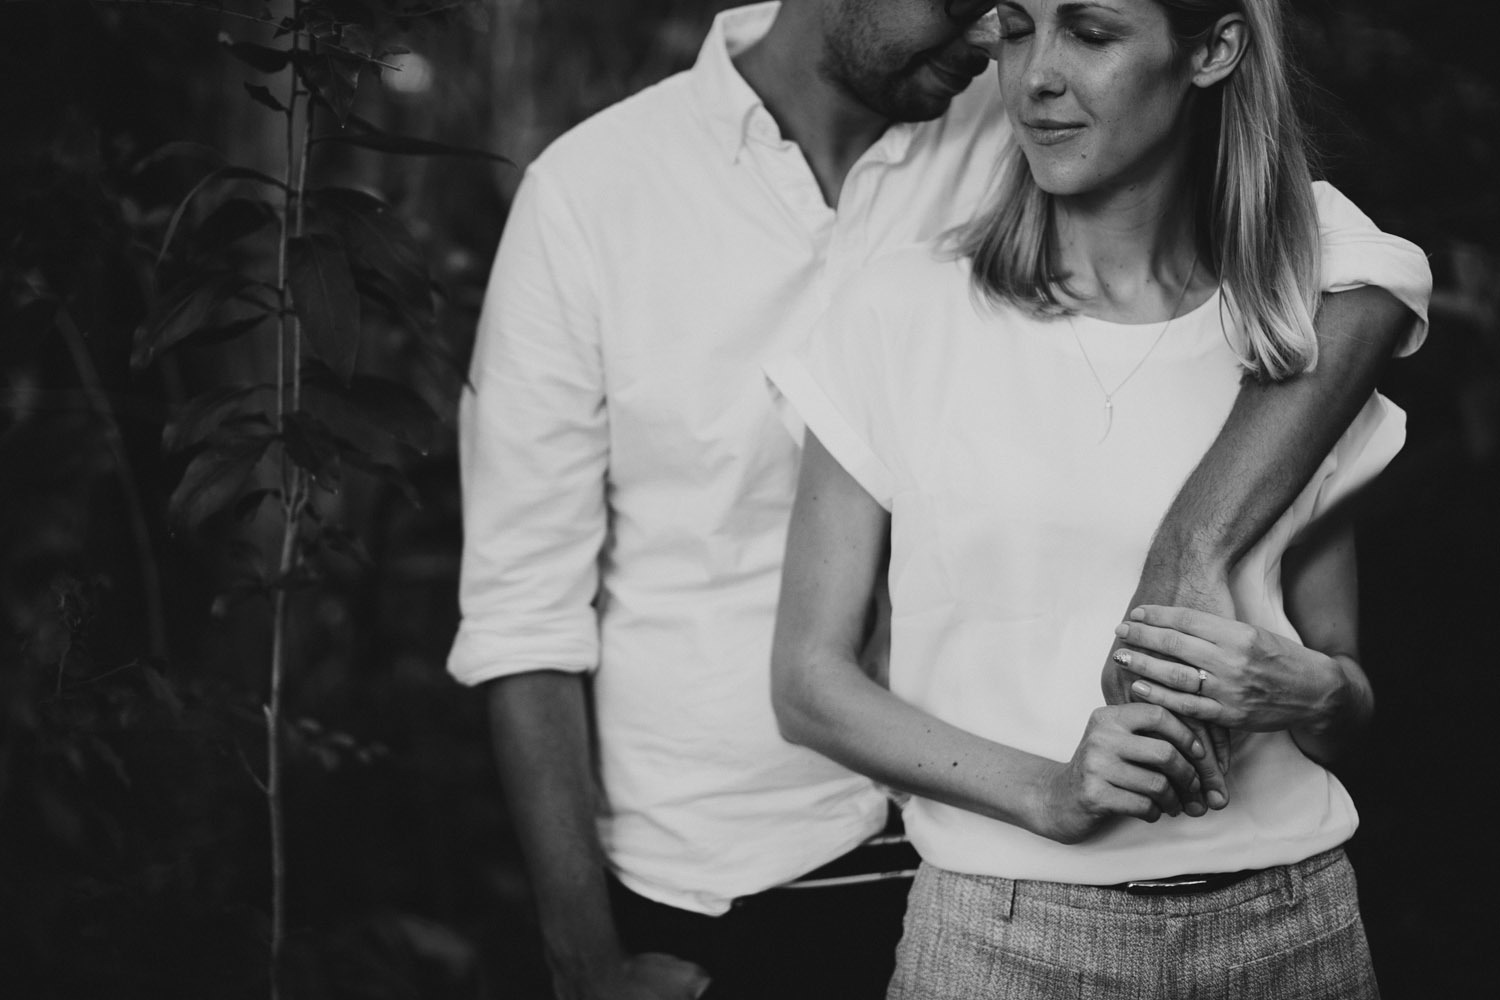 justin_aaron_newcastle_engagement__weddings_photographer-27.jpg